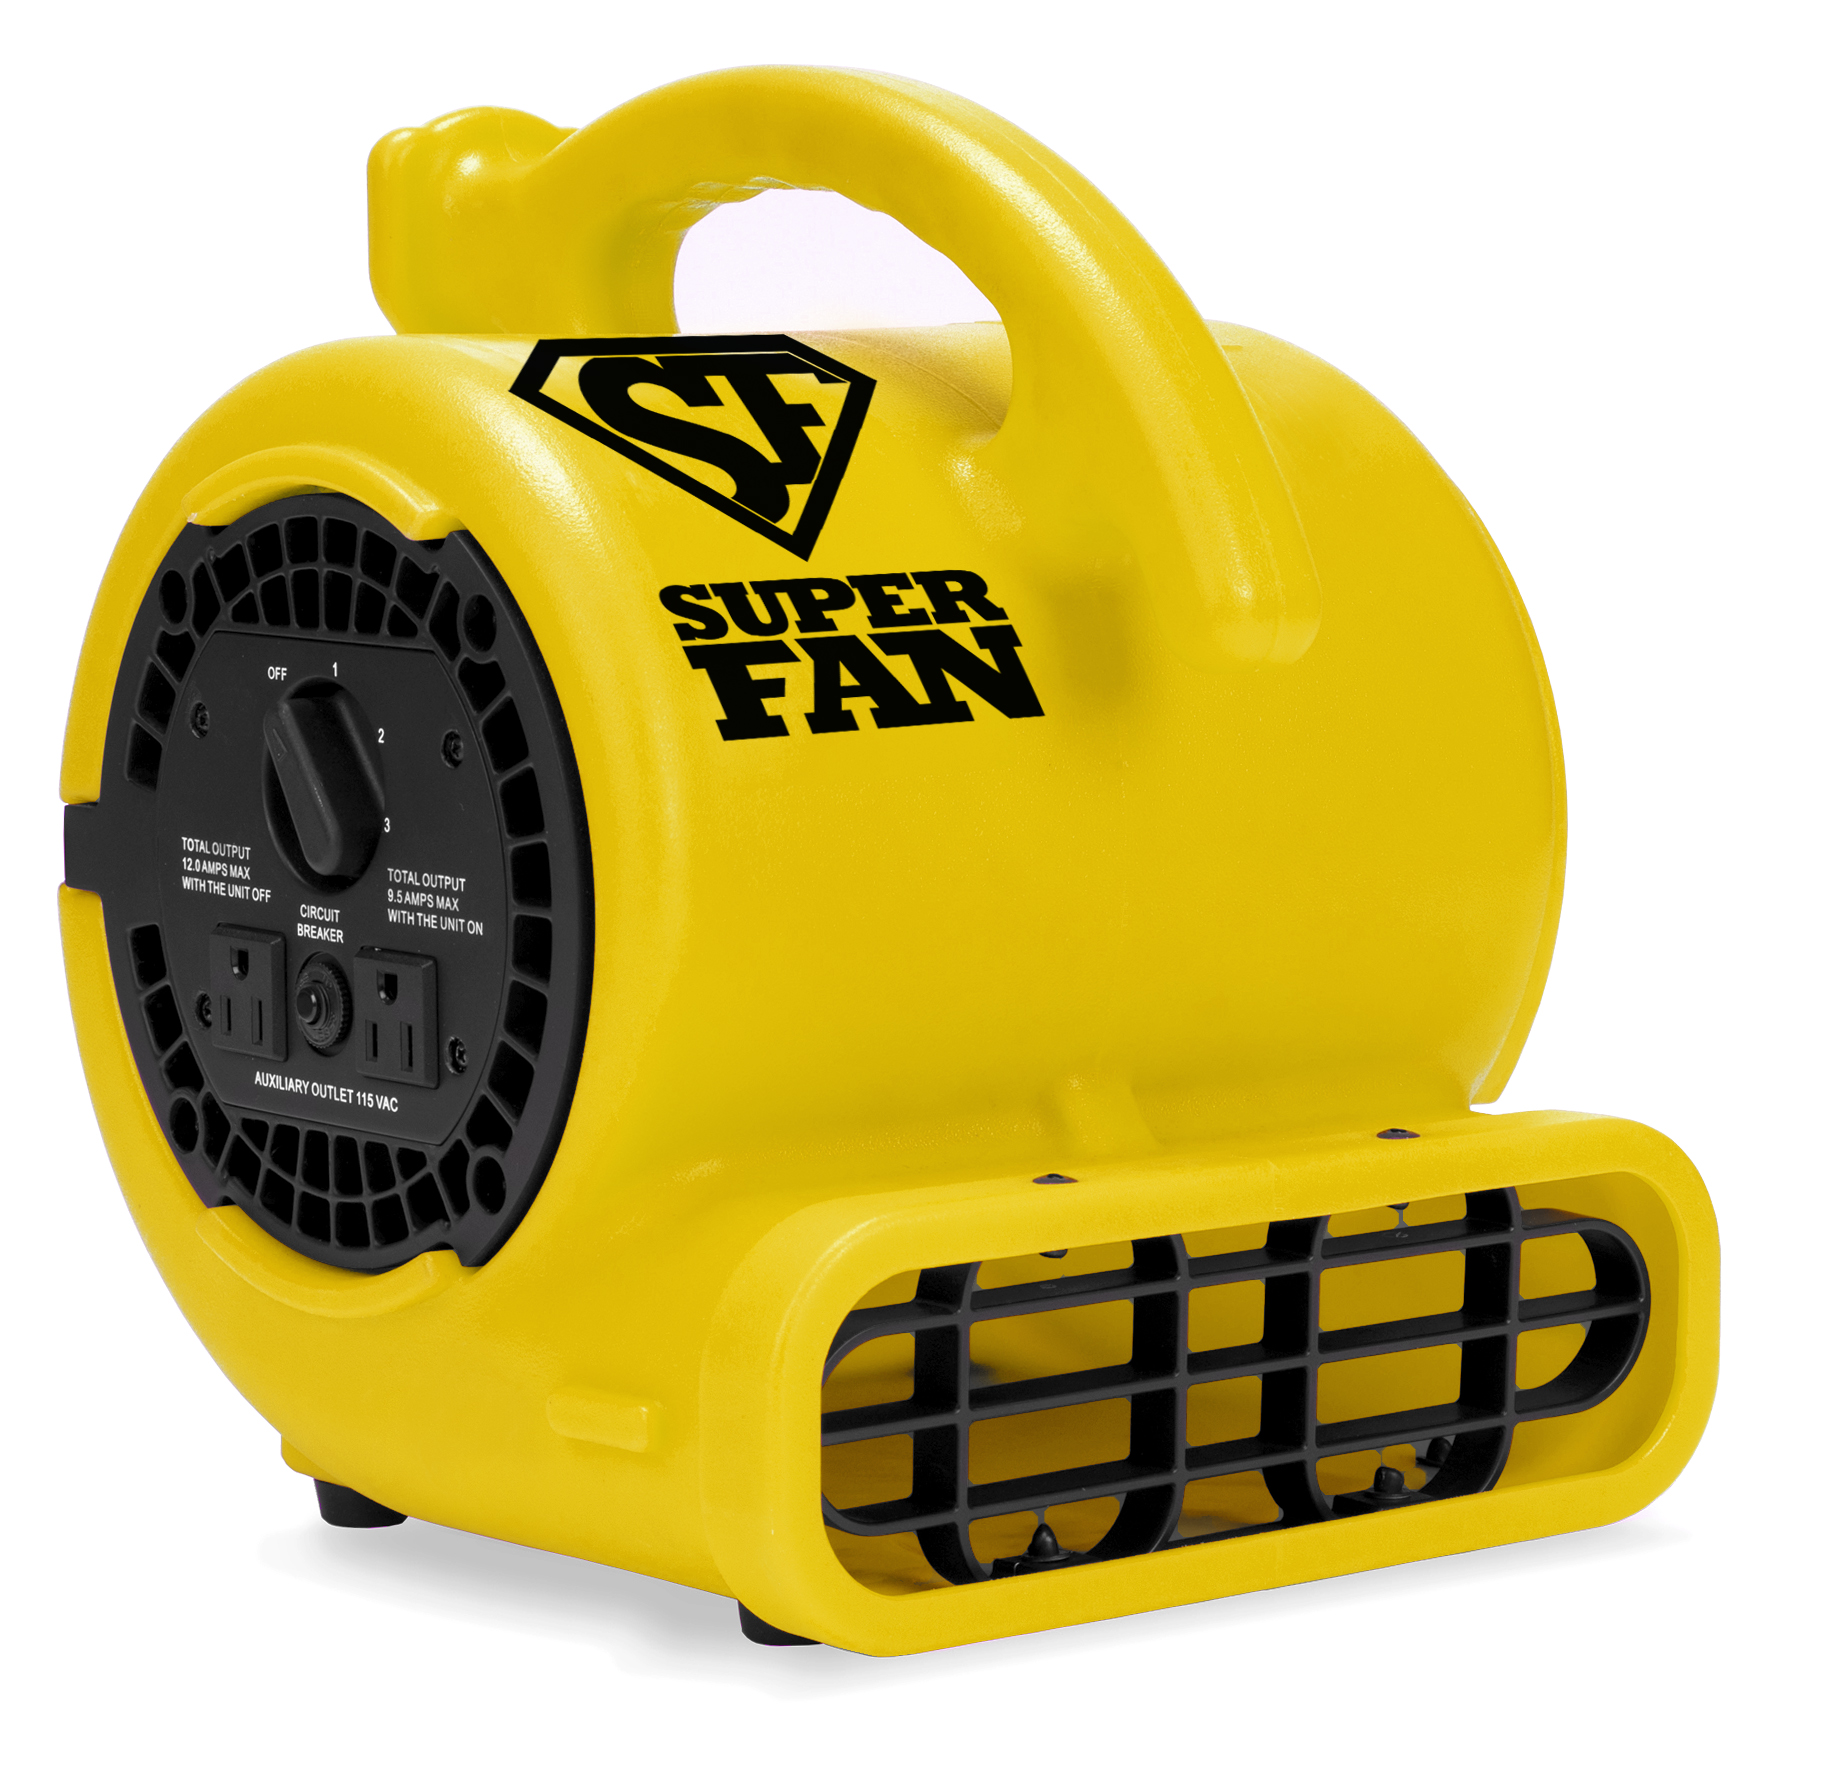 Soleaire Super Fan Home Personal Portable High Velocity Floor Fan, Yellow